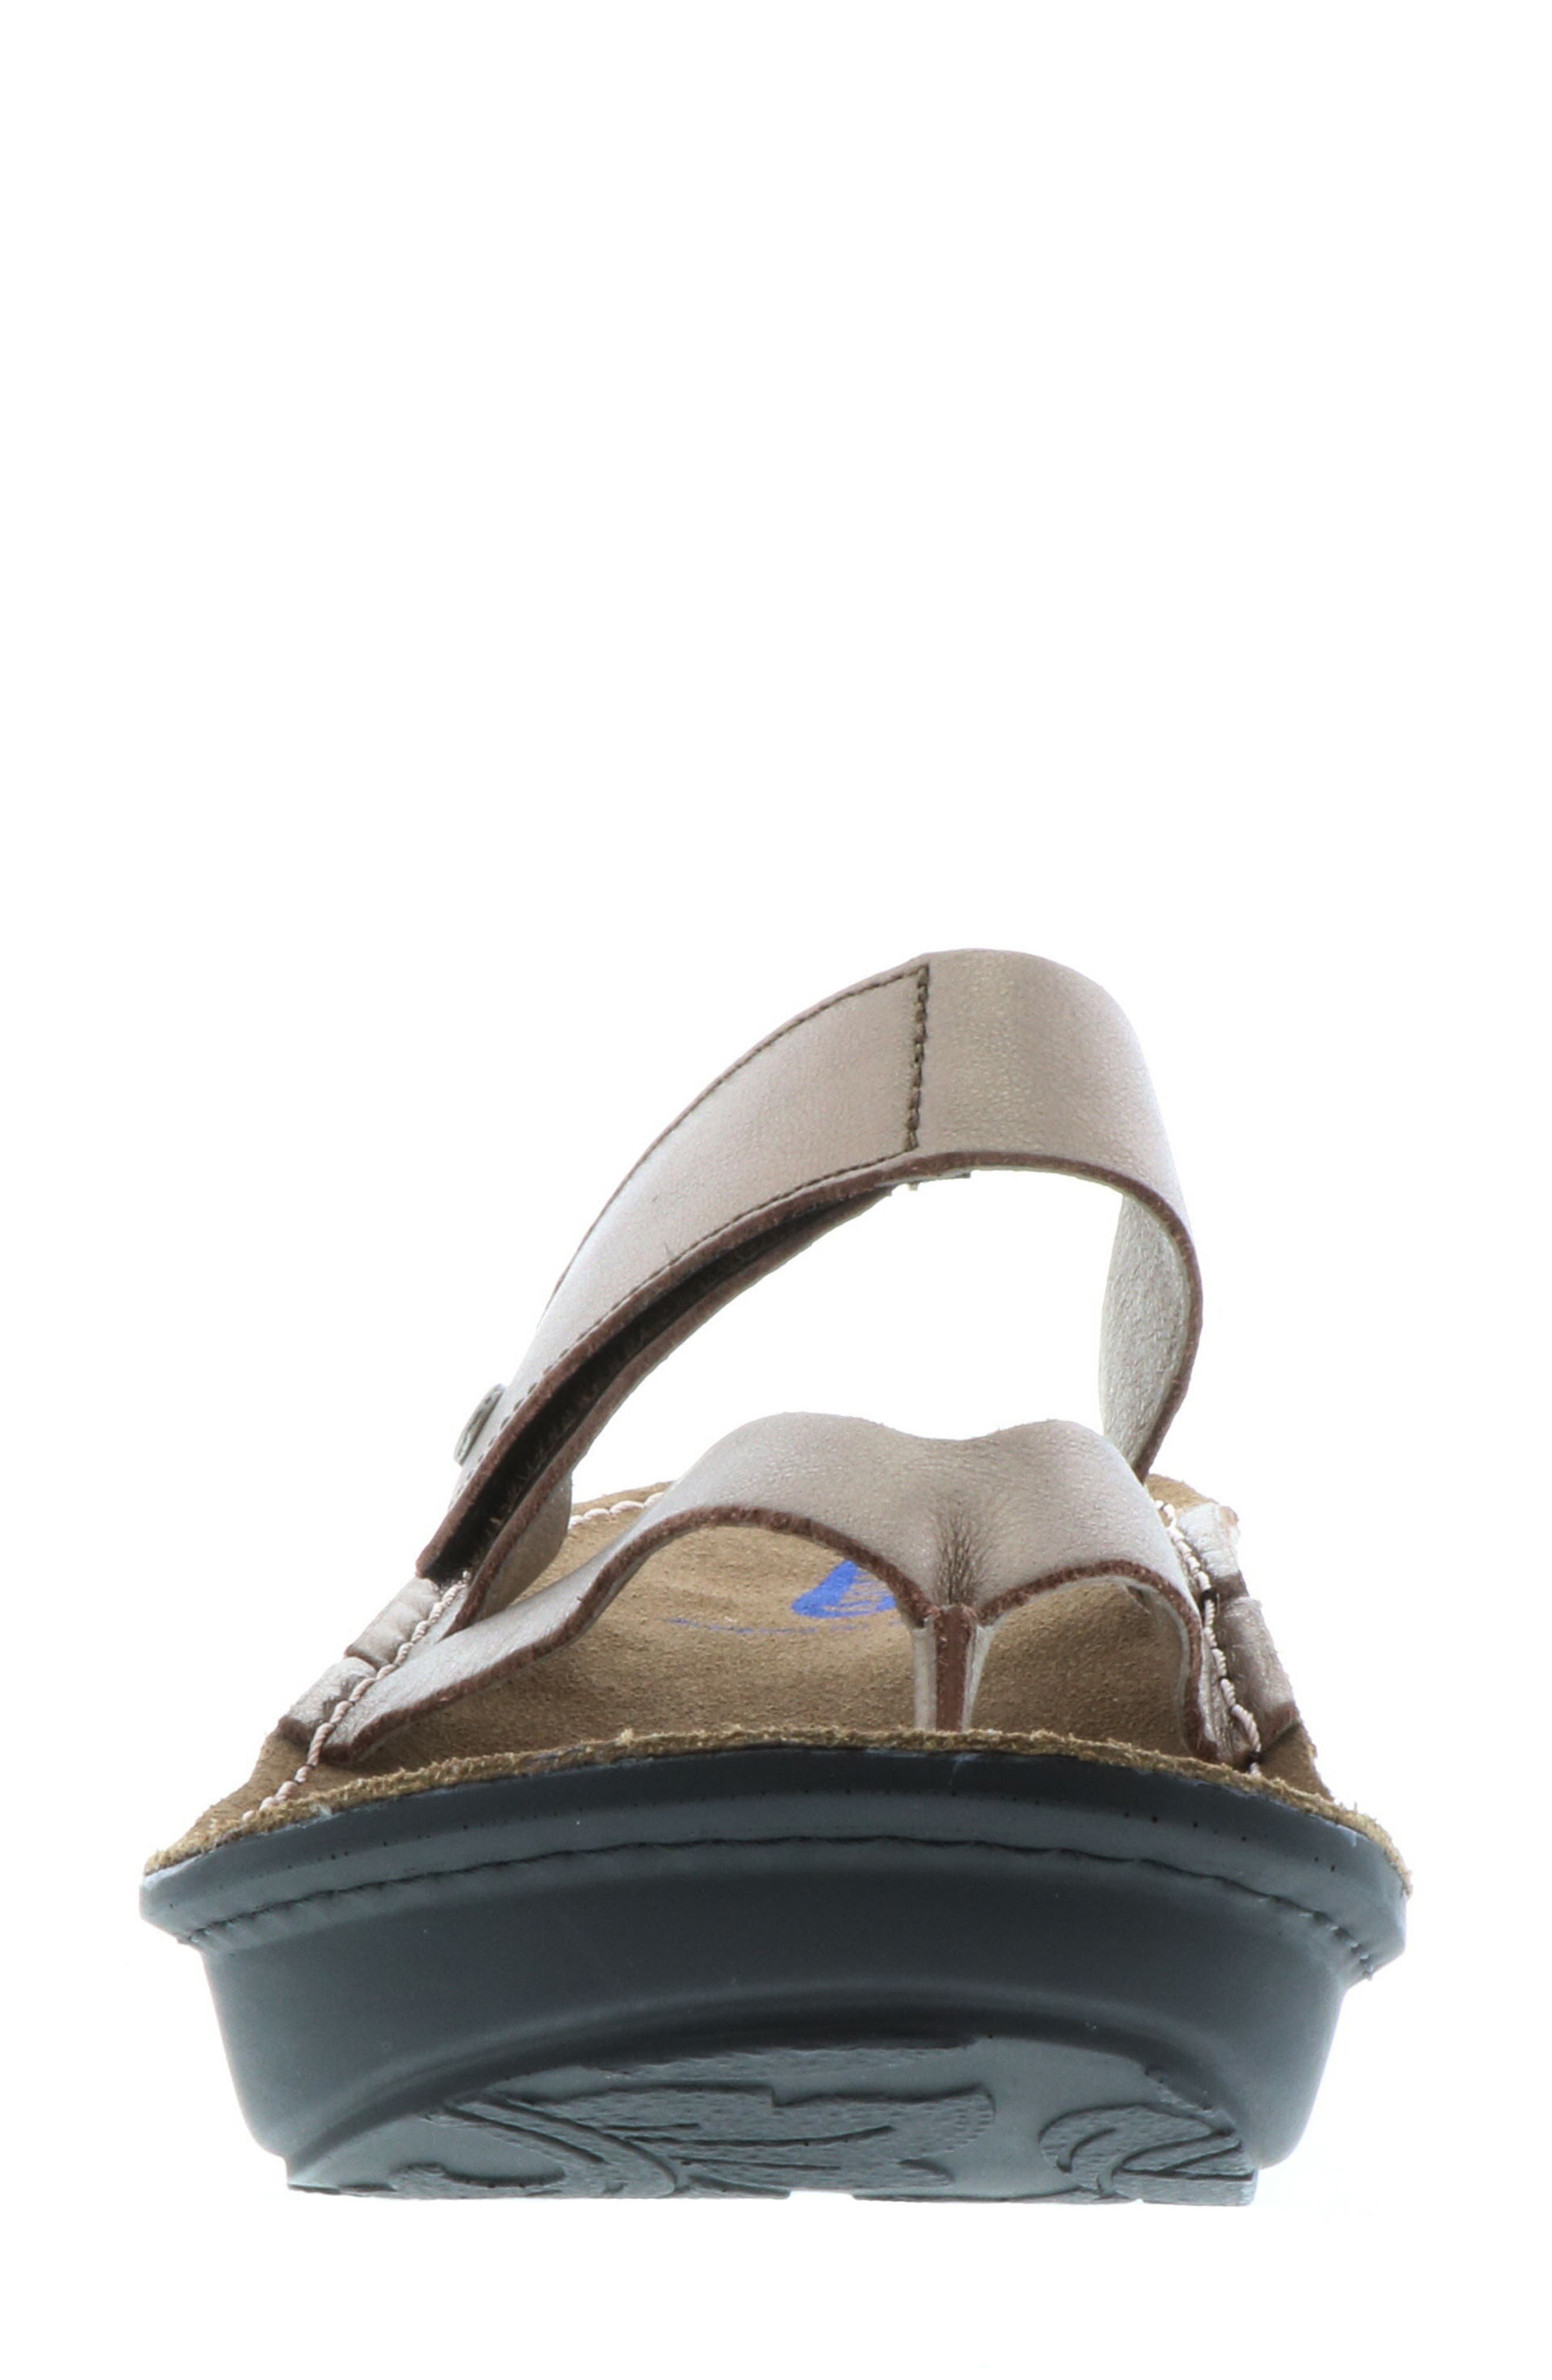 Tahiti Platform Sandal,                             Alternate thumbnail 4, color,                             BRONZE METALLIC